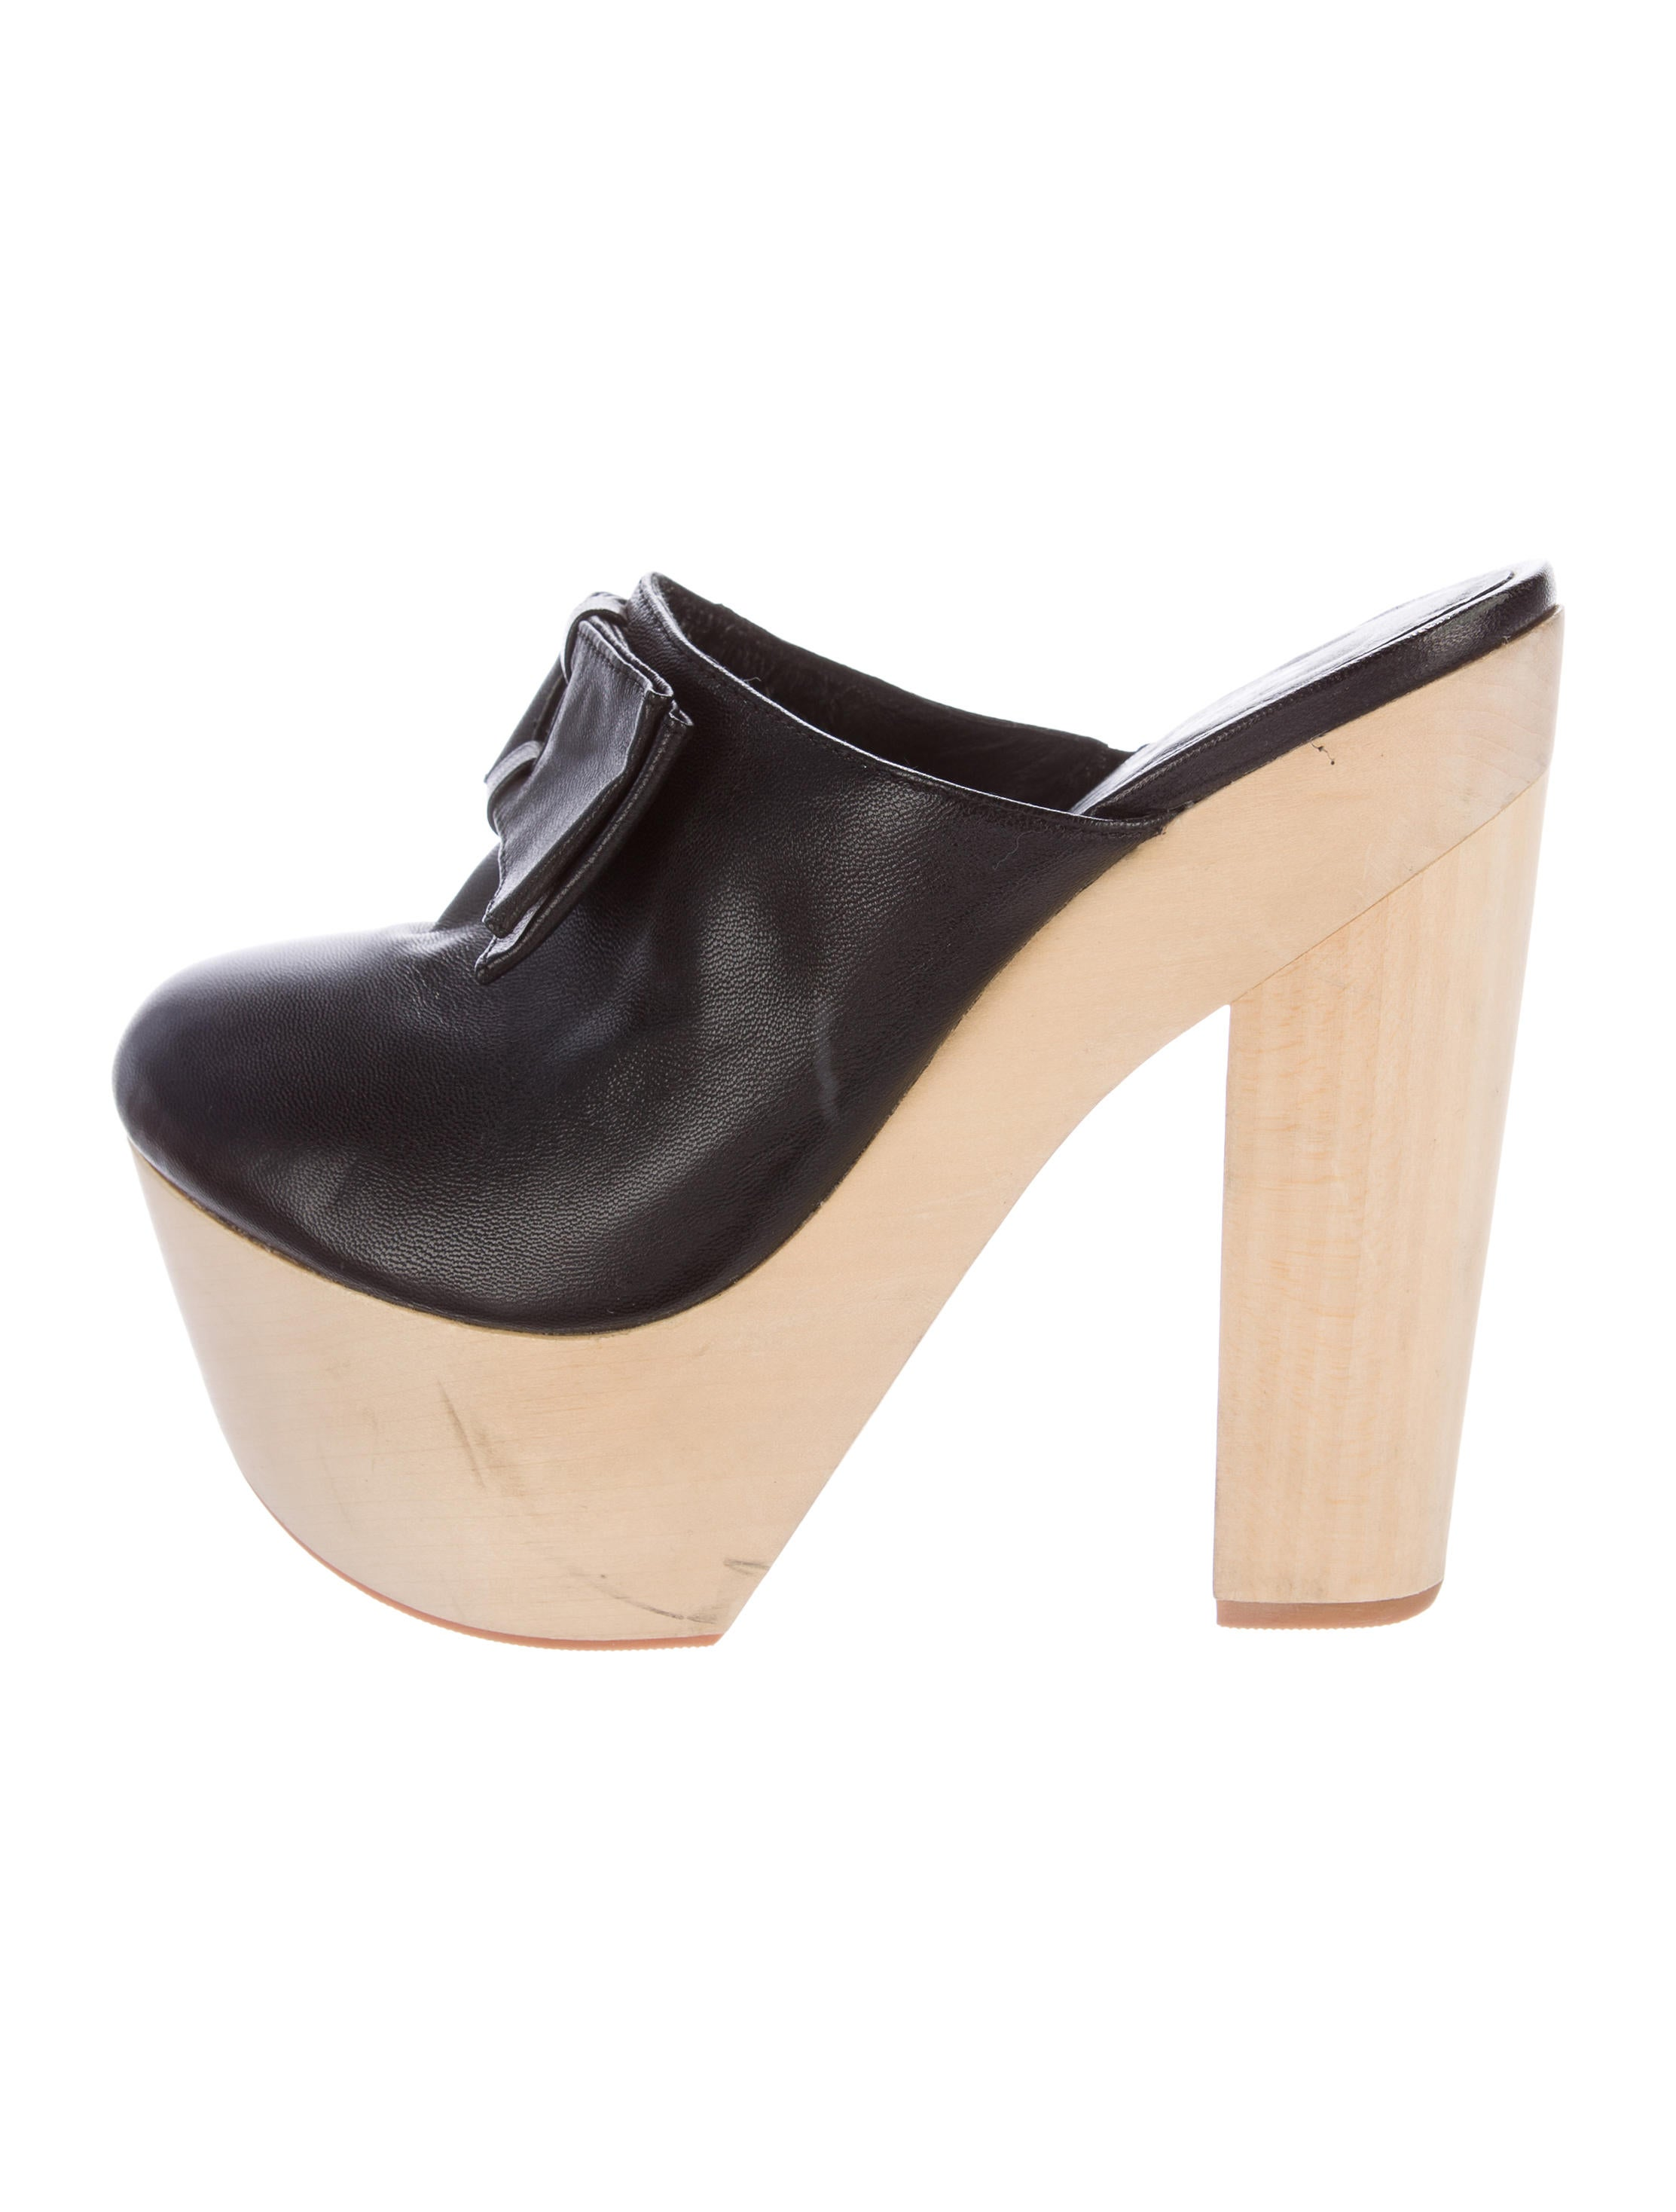 opening ceremony leather platform clogs shoes woc25571